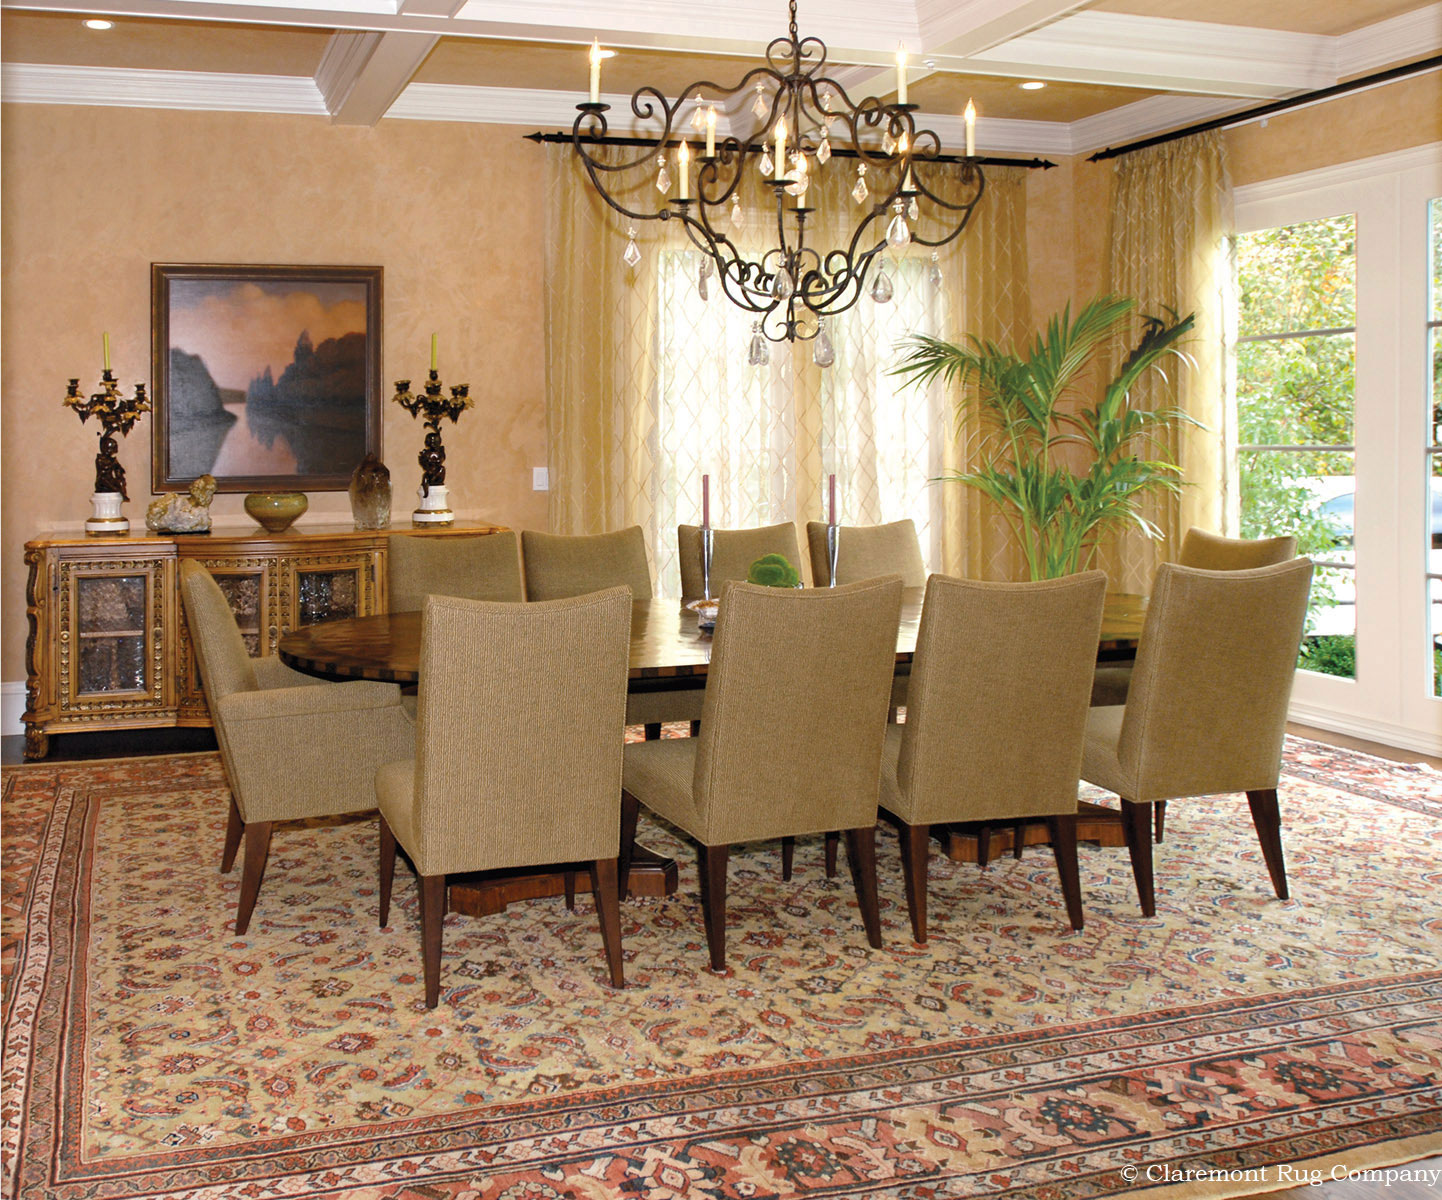 Rare 19th Century Sultanabad Carpet Harmonizes With The Art And Decor Of This Charming Dining Room